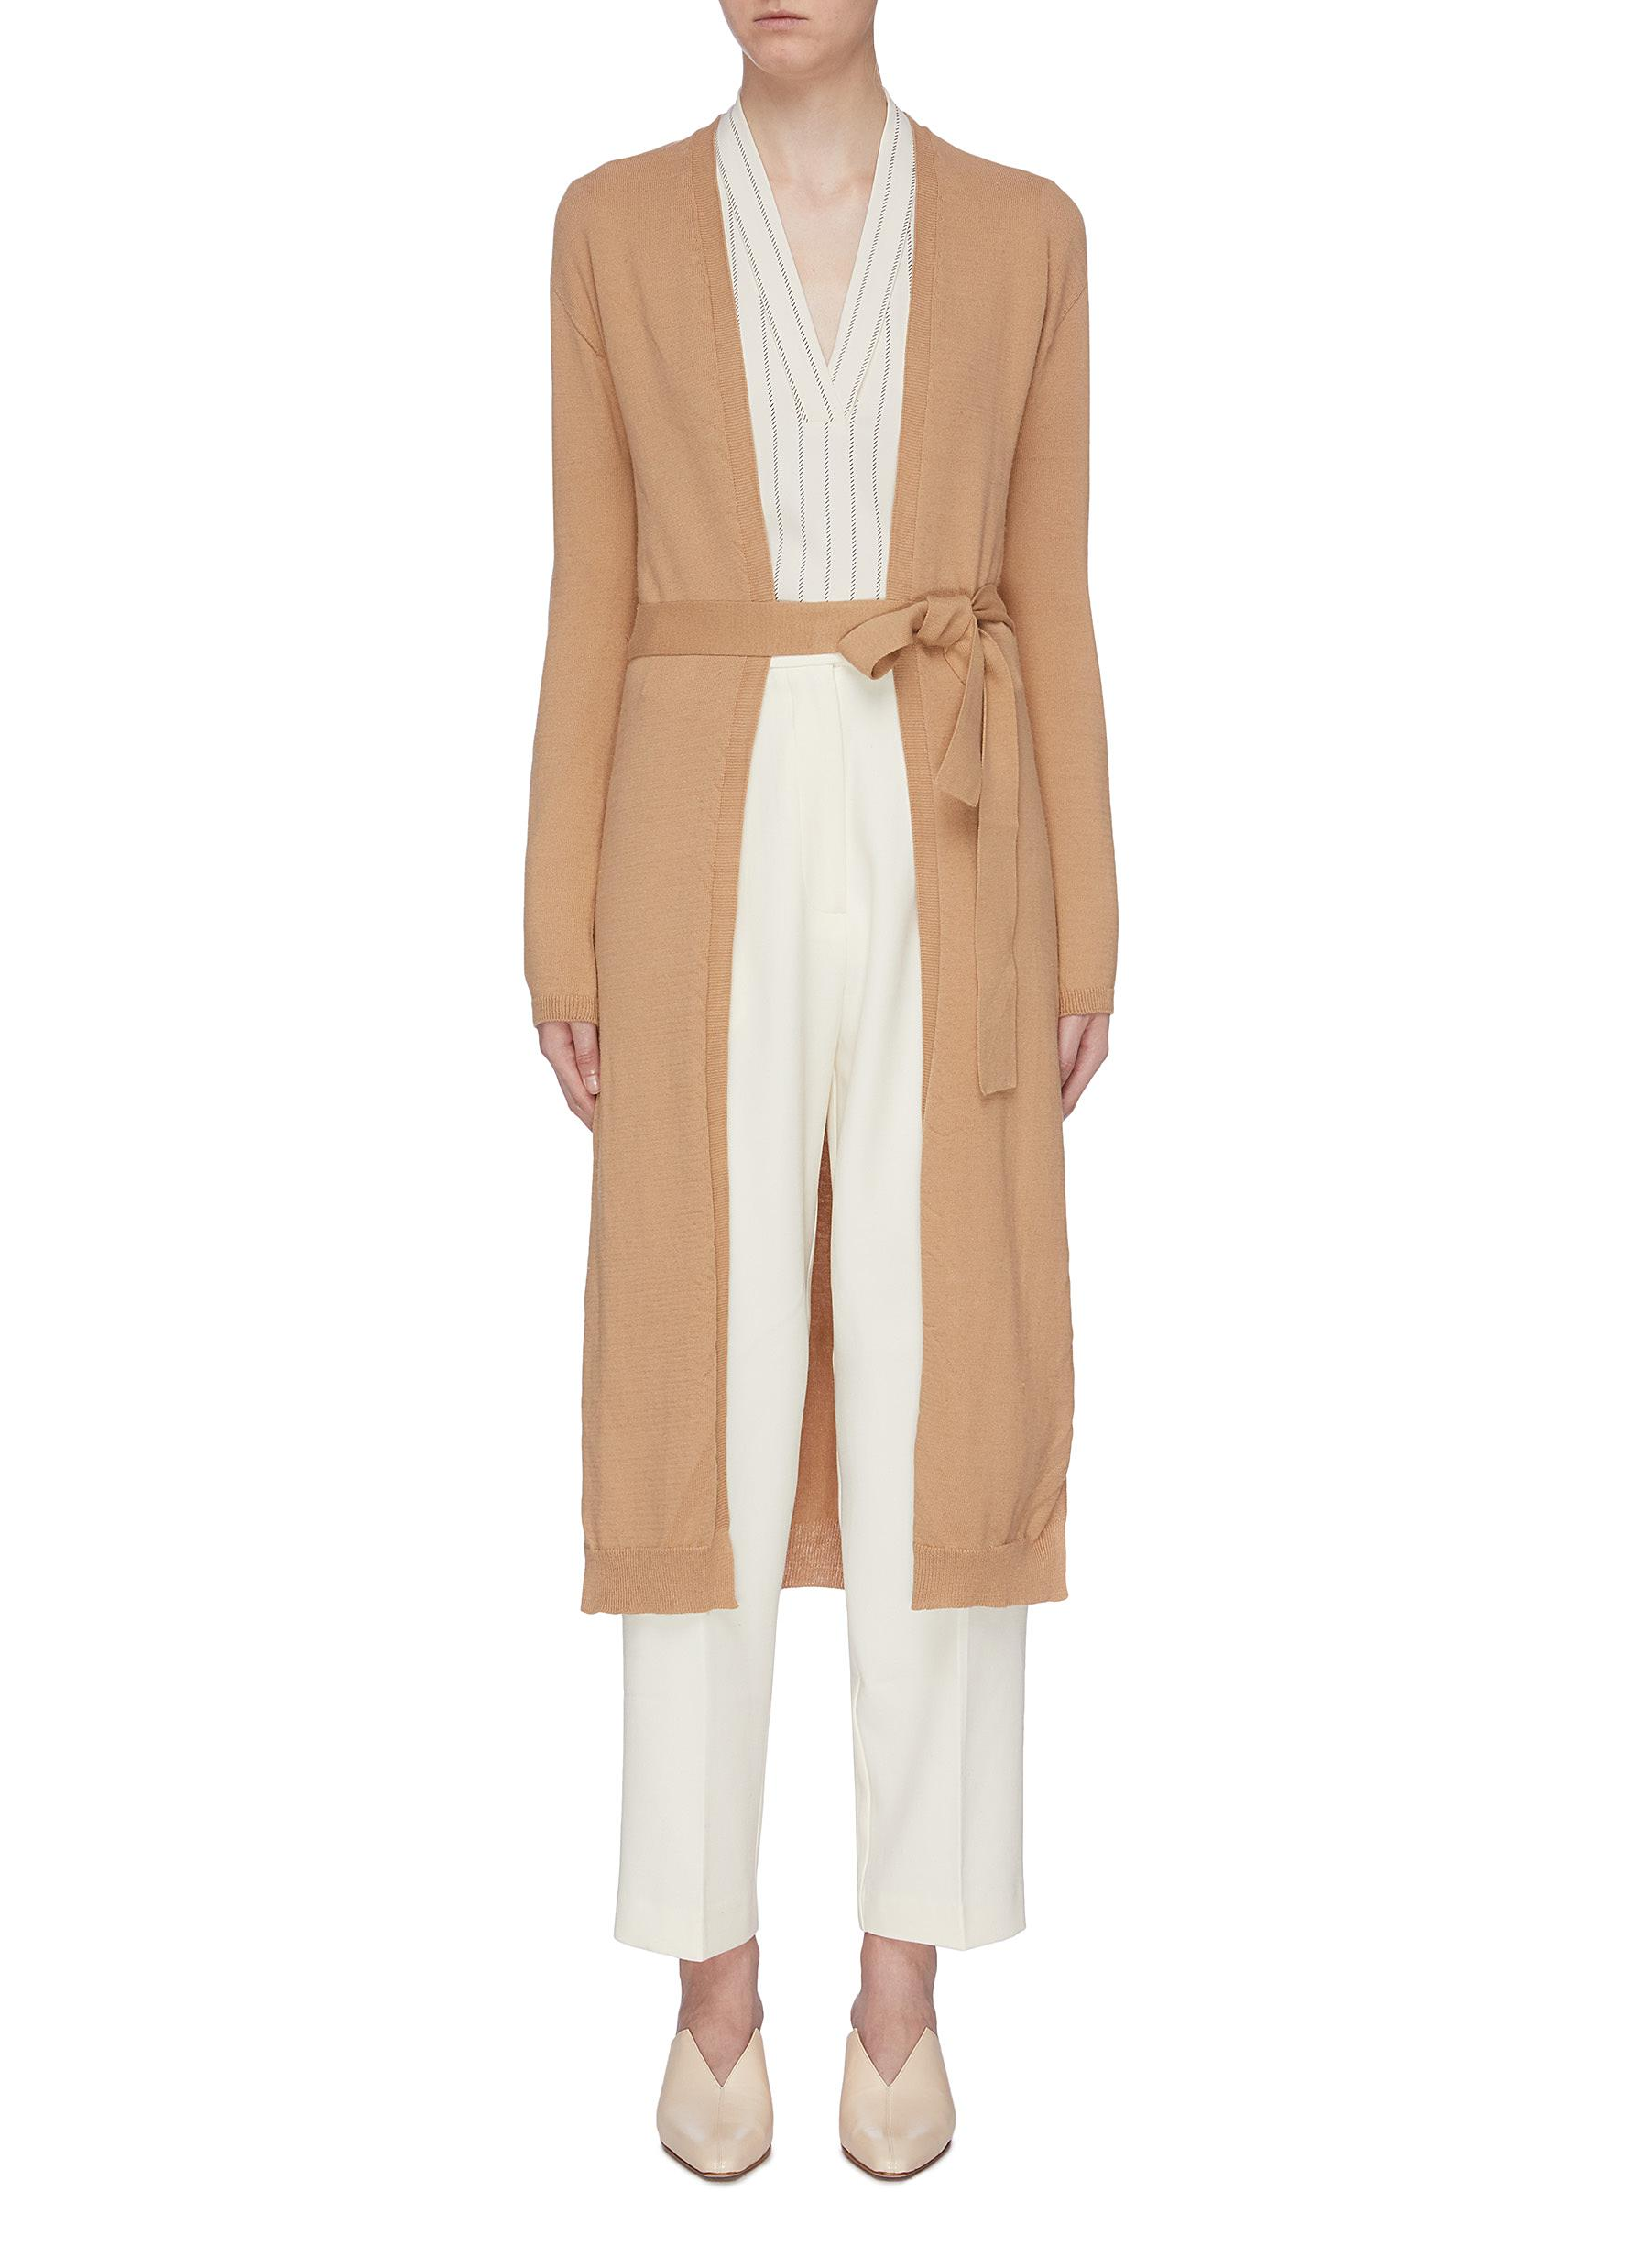 Sash belted long open cardigan by Mijeong Park